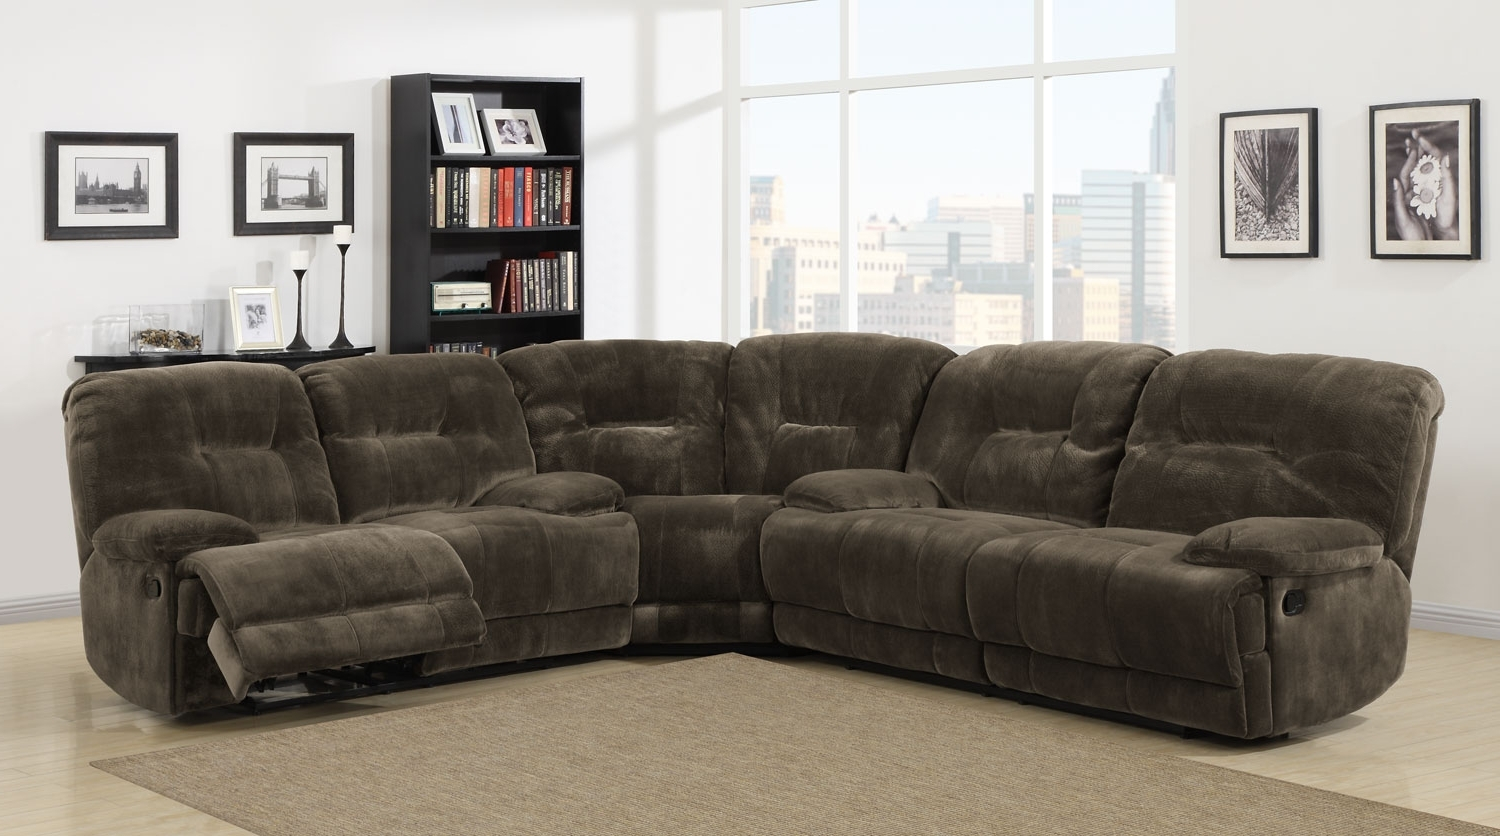 Sectional Sofas With Power Recliners For Most Popular Homelegance Geoffrey Power Reclining Sectional Sofa Set Throughout (View 2 of 15)